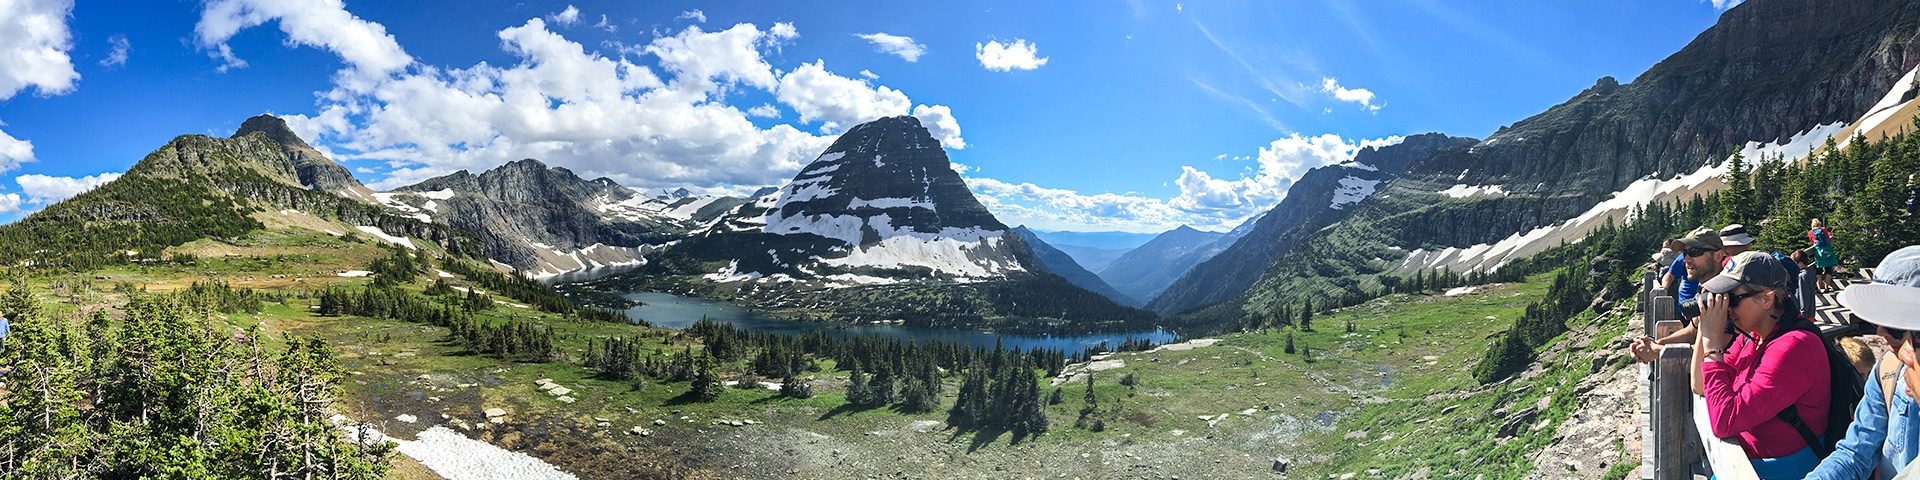 Panorama from the Hidden Lake Overlook hike in Glacier National Park, Montana